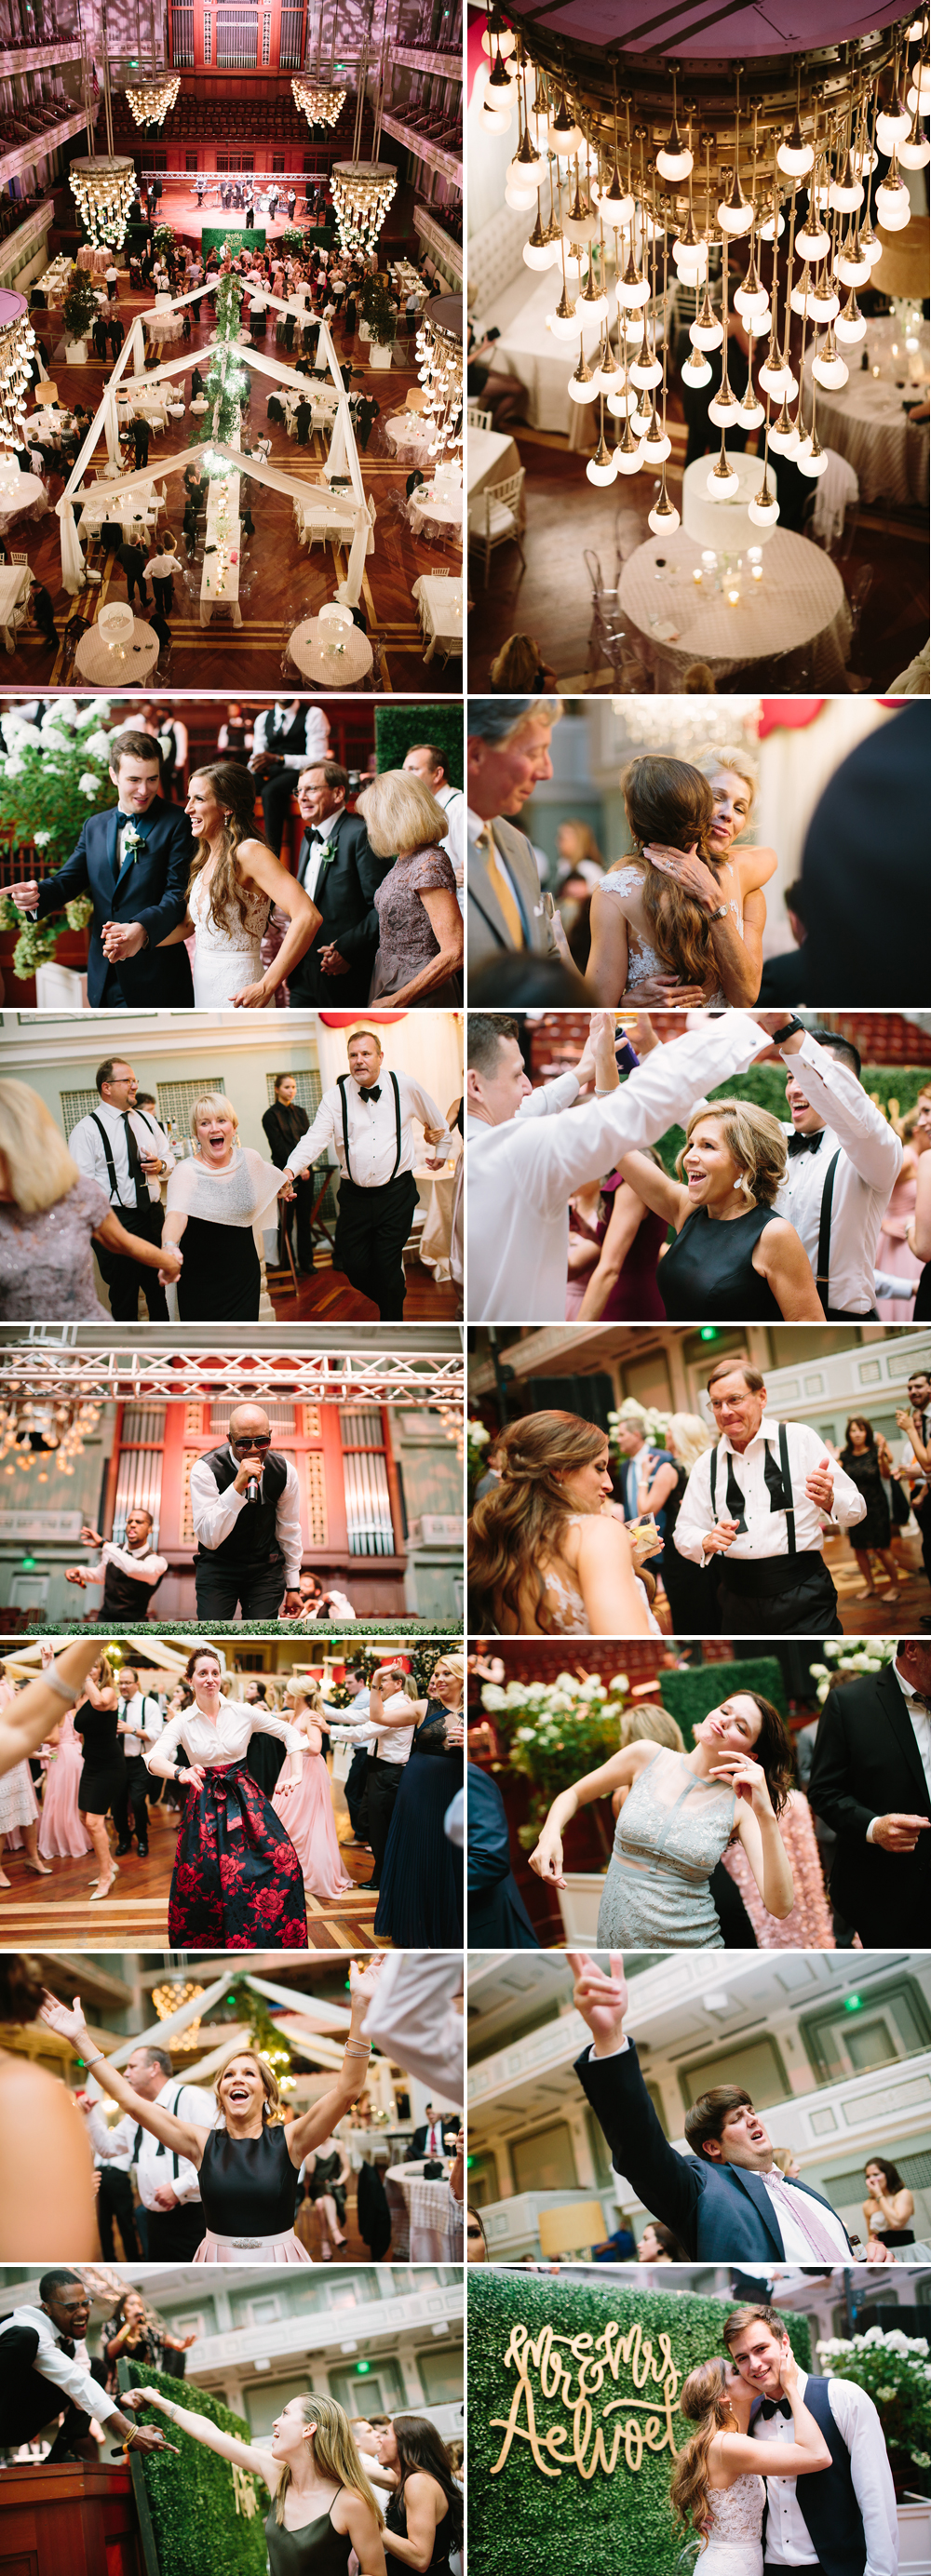 Nashville_symphony_wedding_photographer_Rachel_Moore_8.jpg